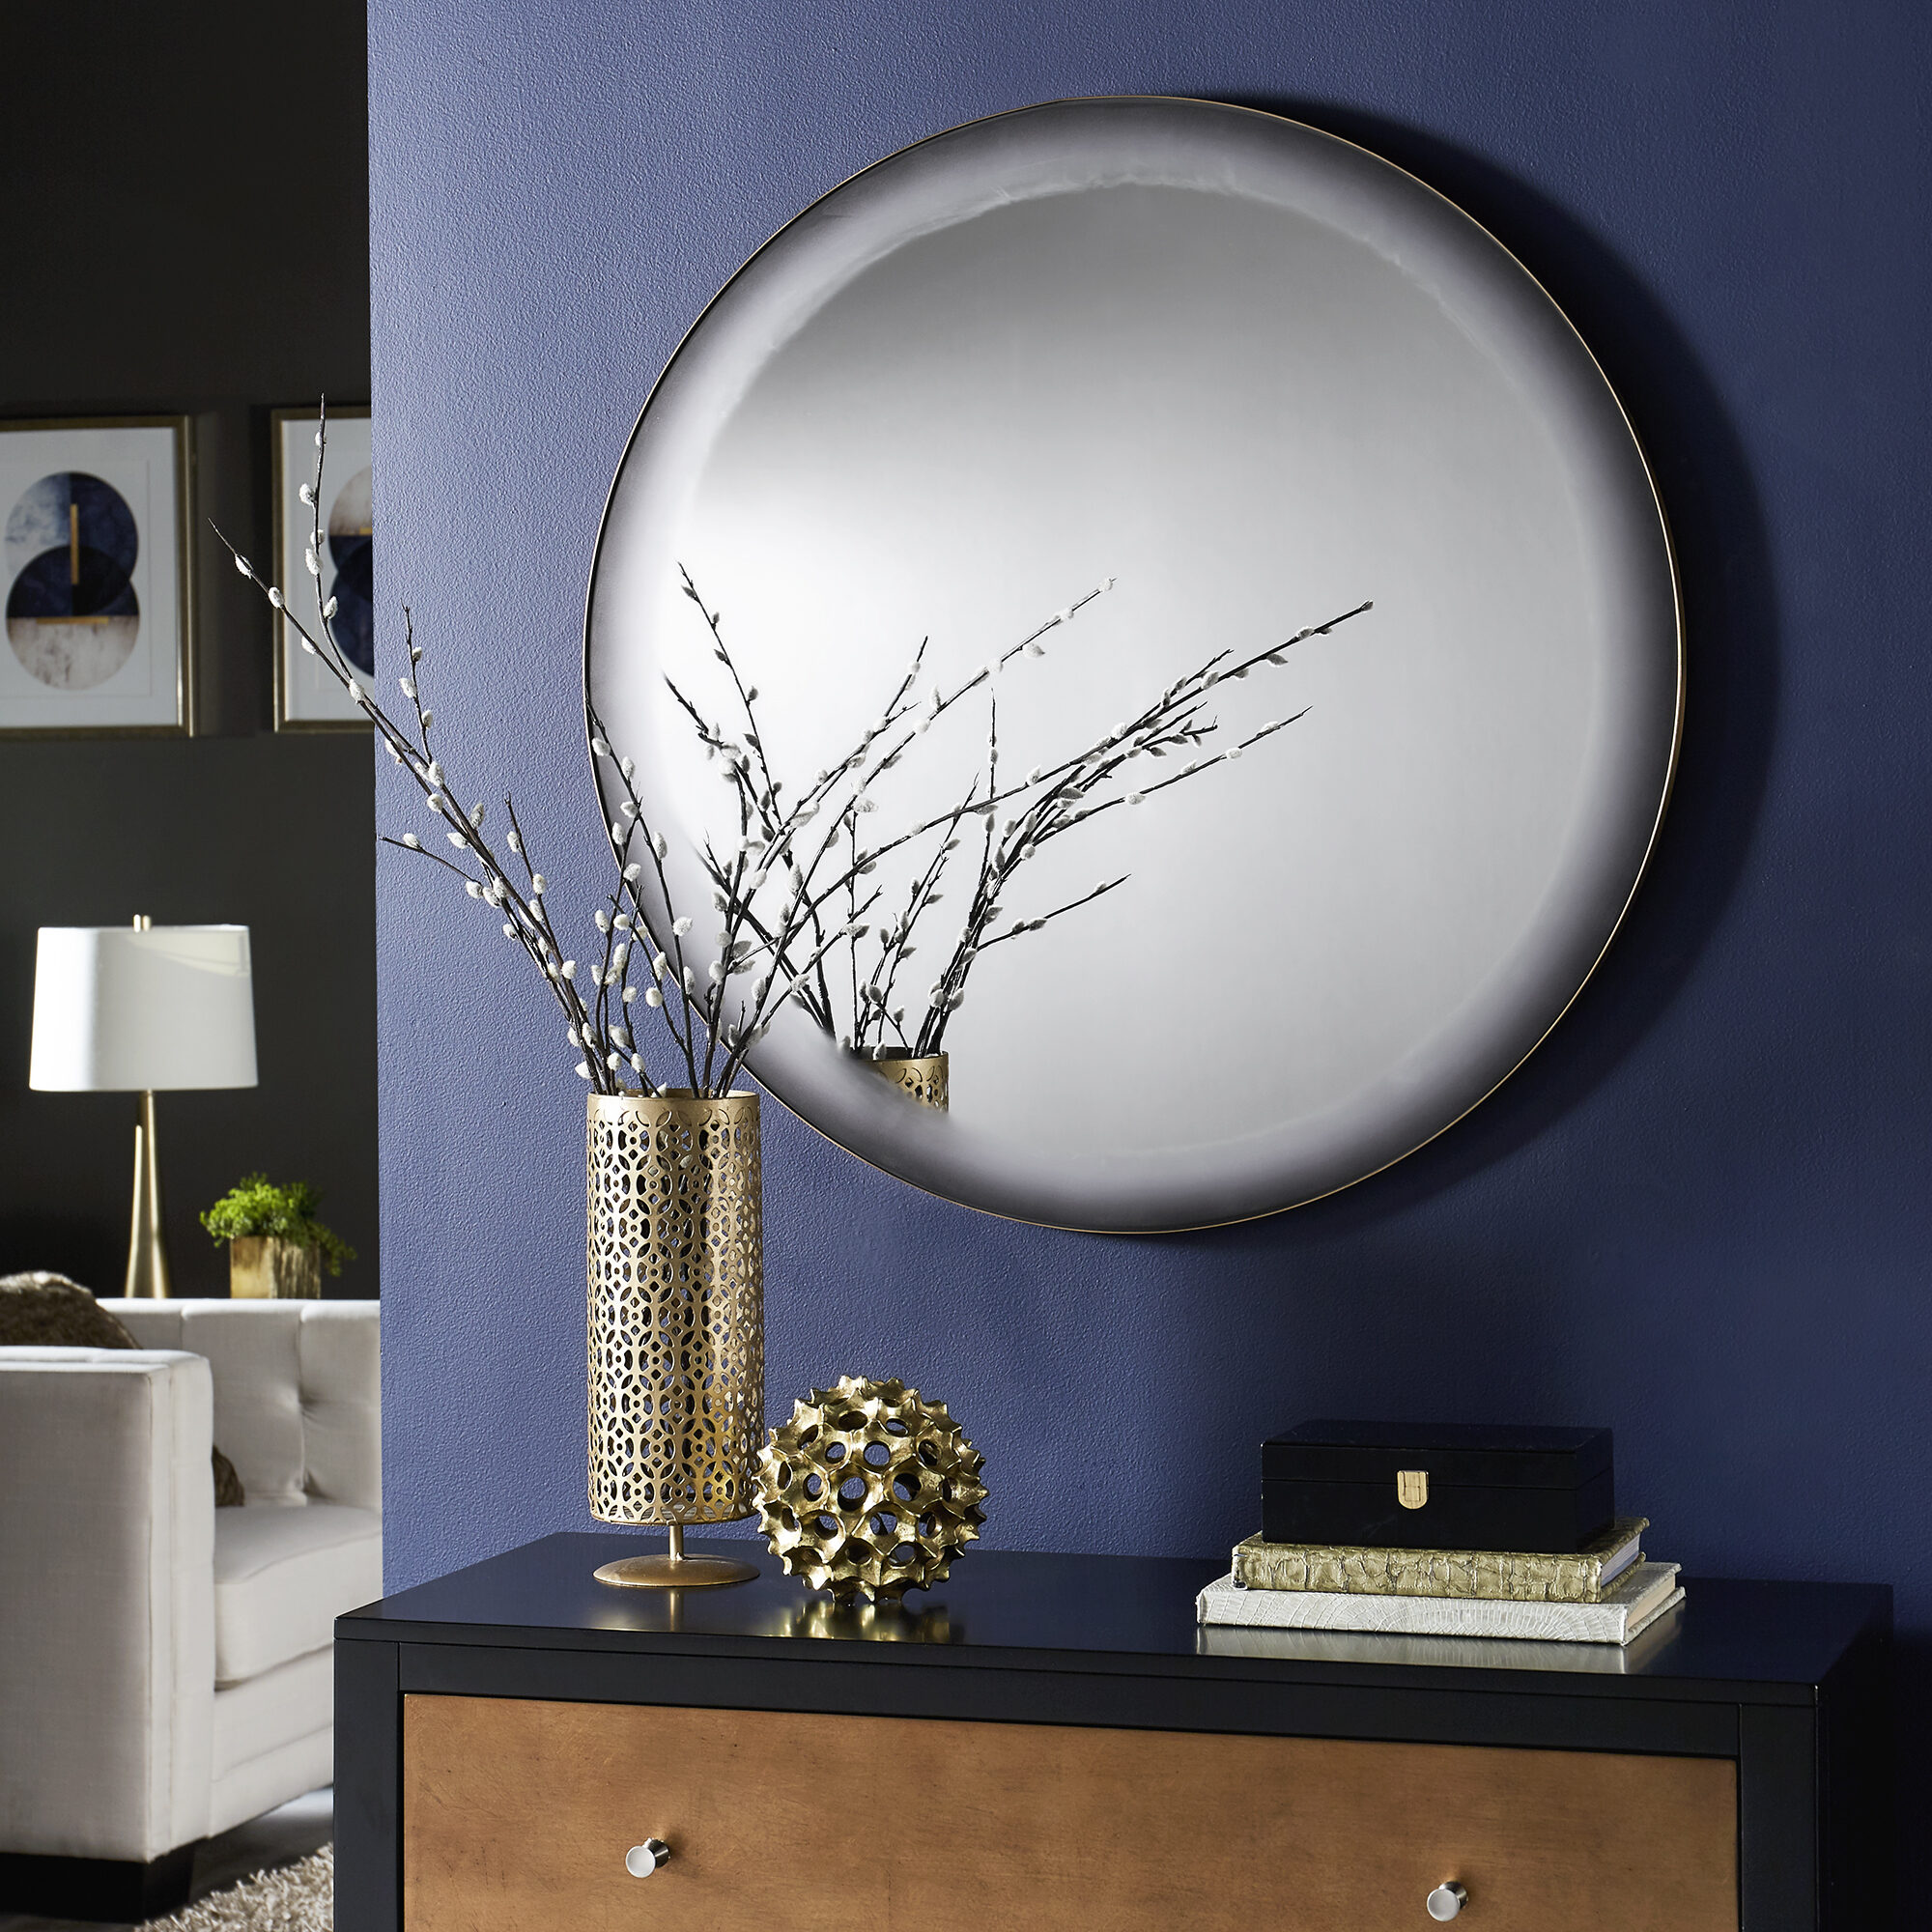 This grey-frosted edge round wall mirror is hung over a dresser. It adds visual interest to the room while still providing a spot for touching up appearances.